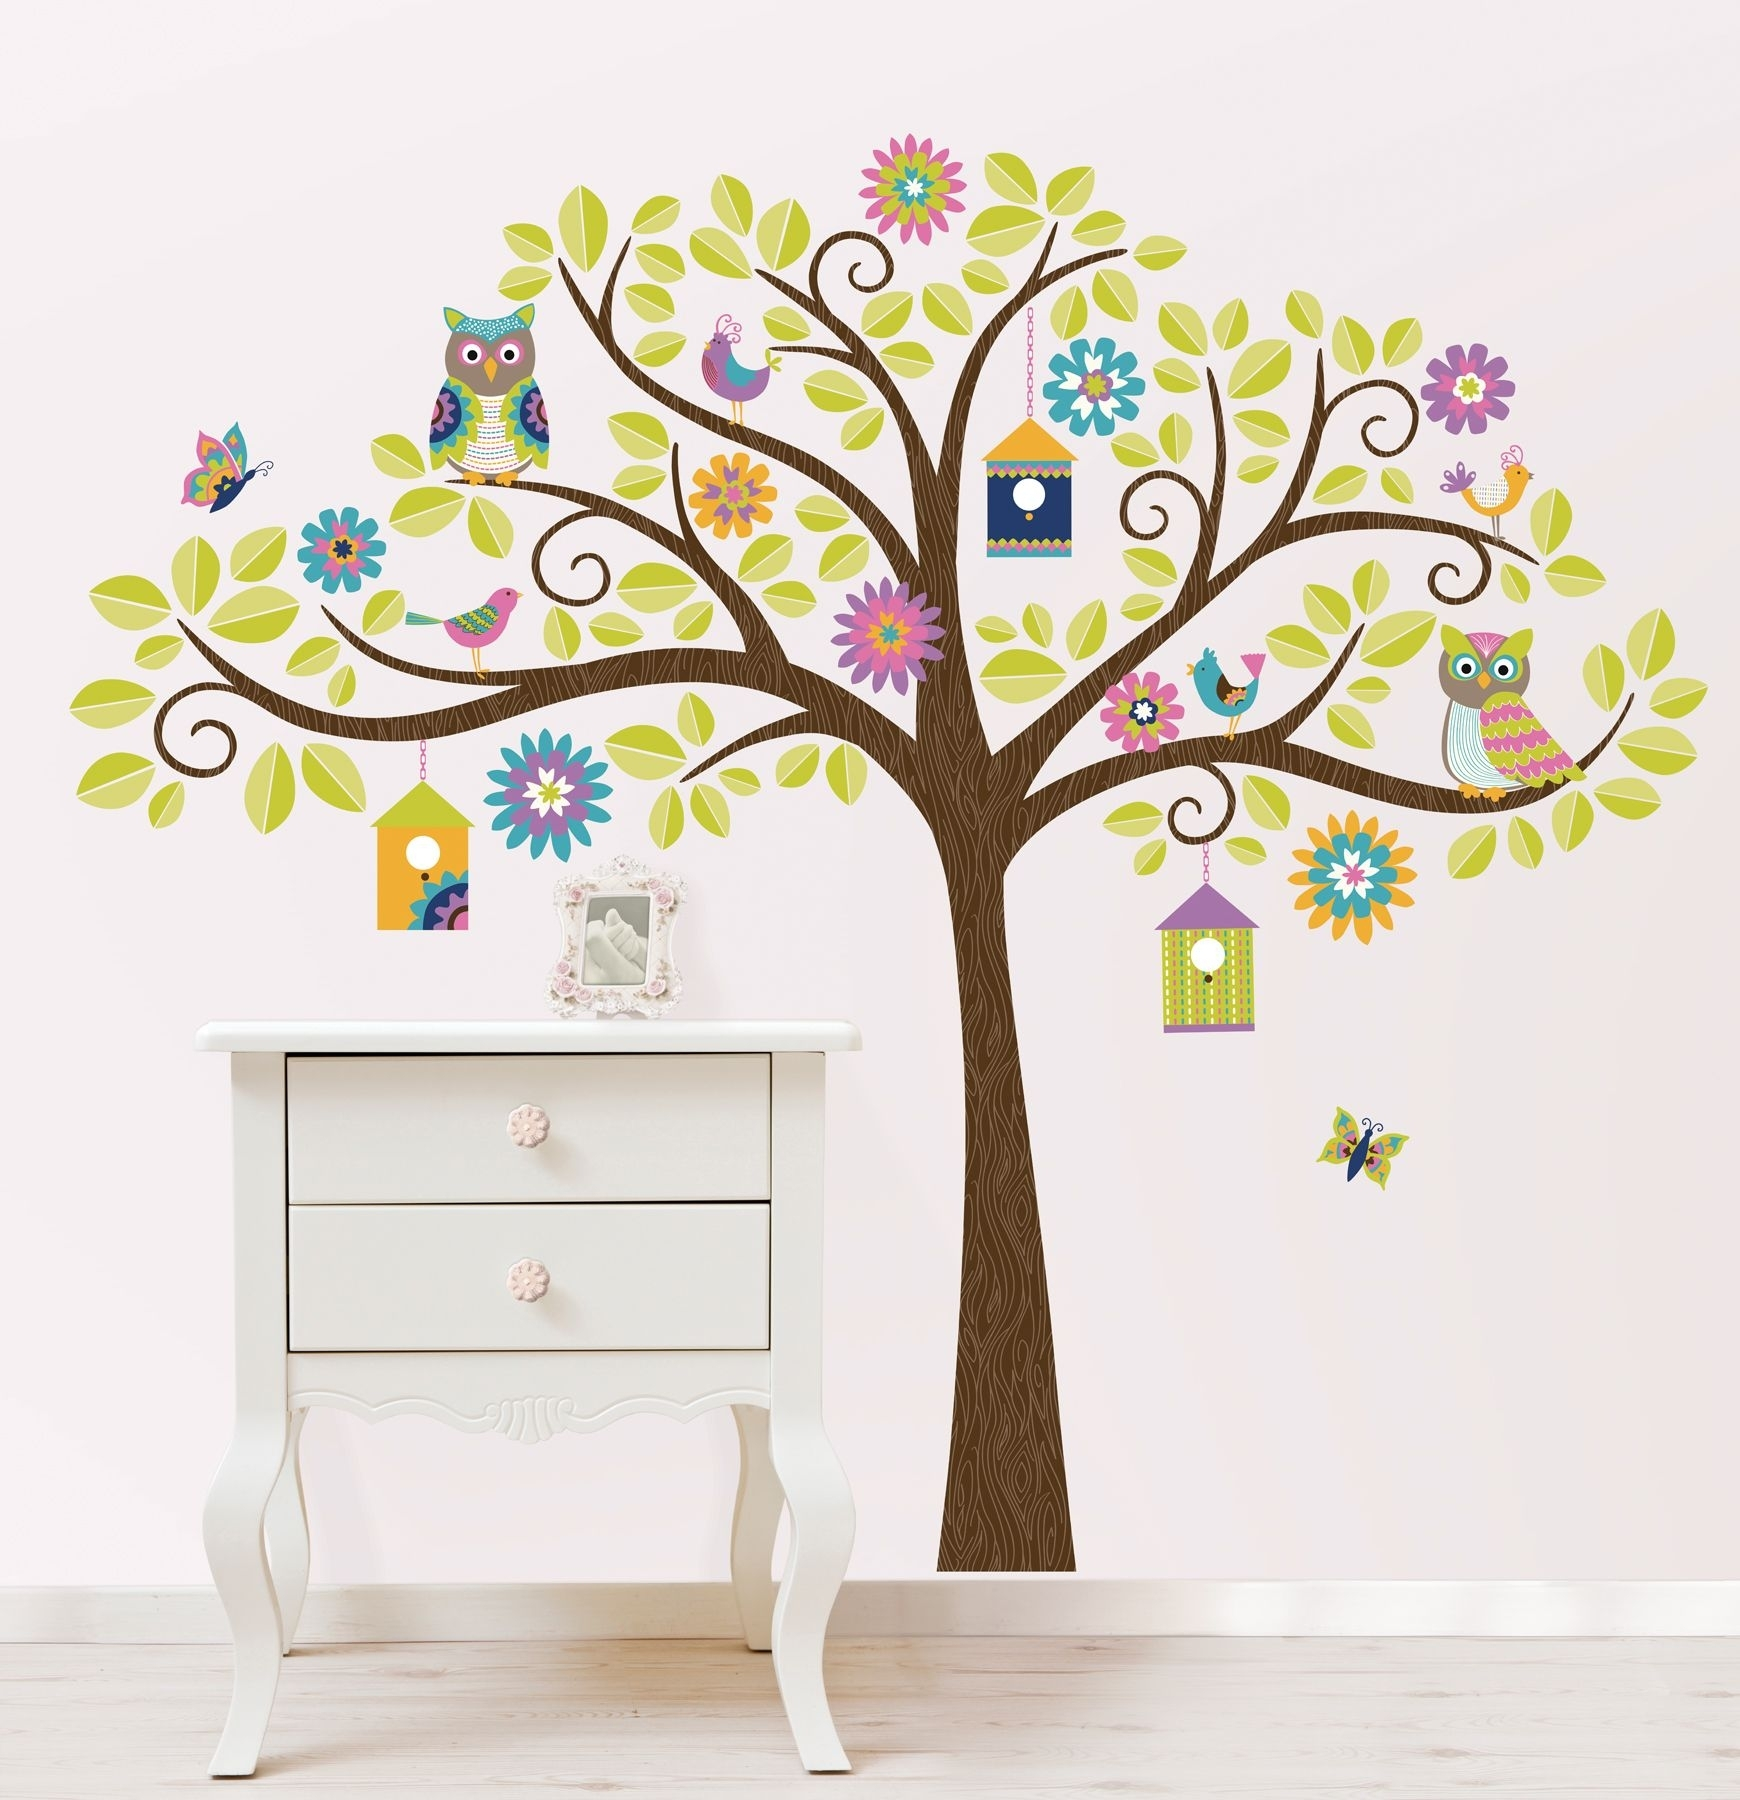 Hoot And Hang Out Tree Wall Art Sticker Kit within Tree Wall Art (Image 6 of 20)